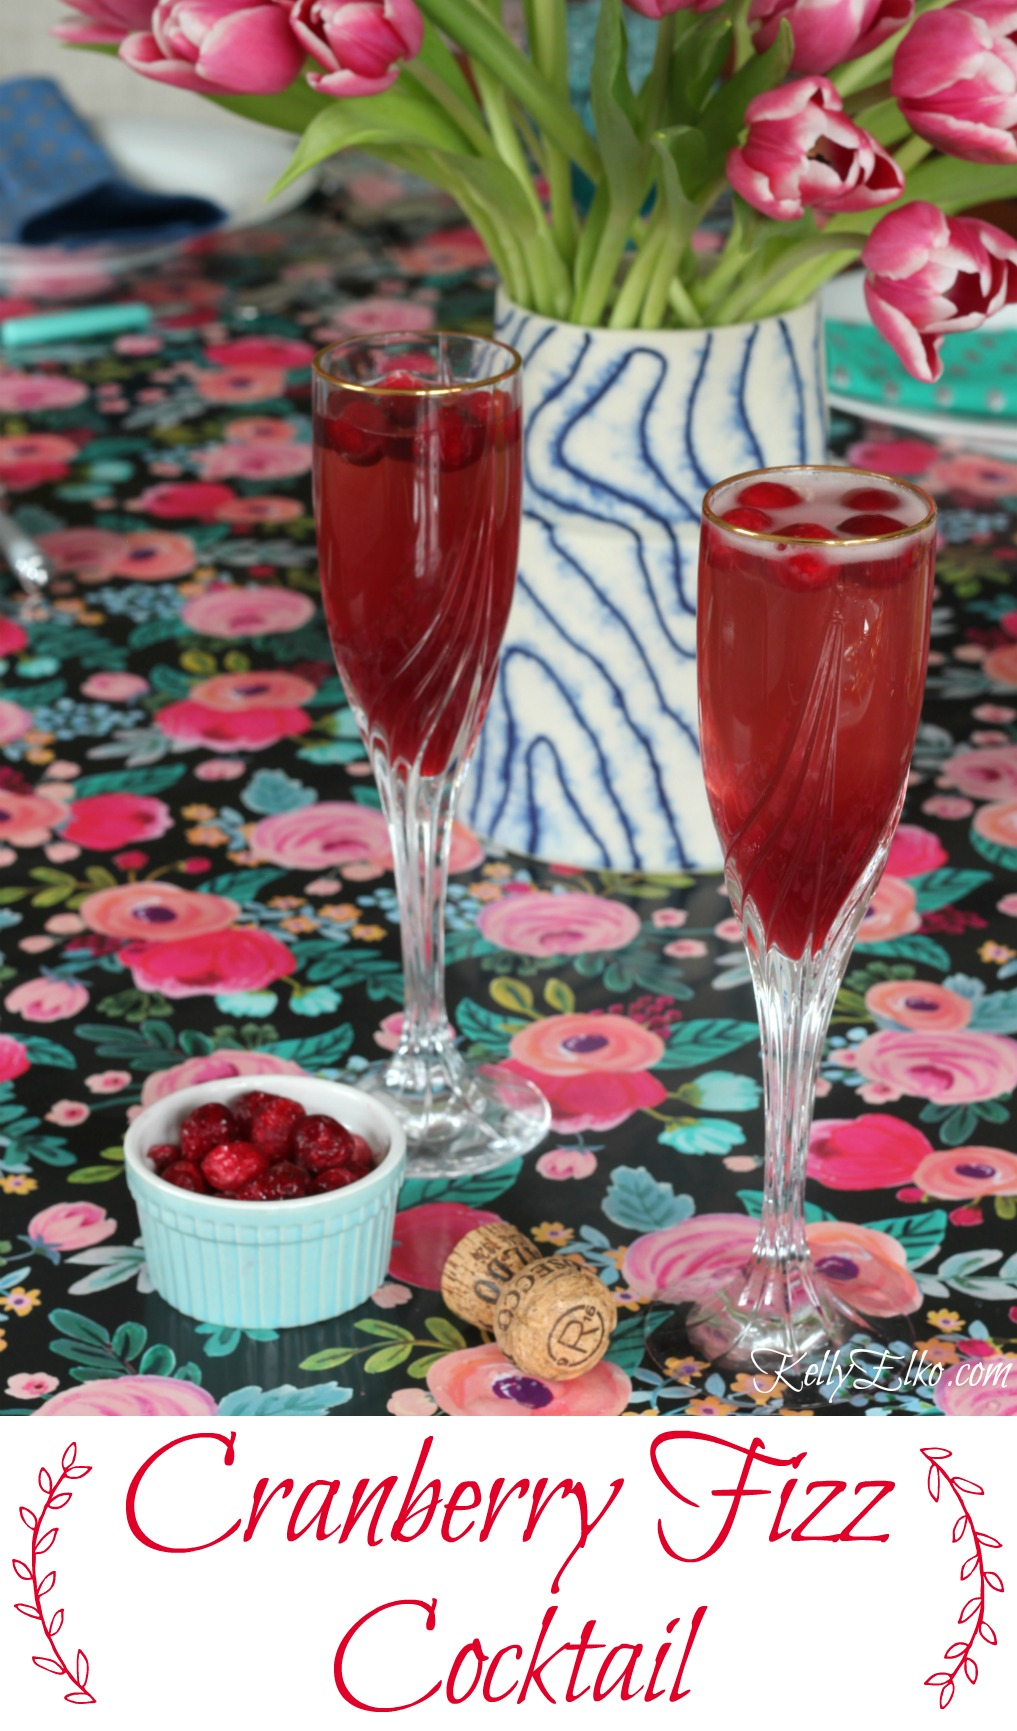 Cranberry Prosecco Cocktail - the perfect blend of sweet, tart and bubbly! Cheers kellyelko.com #cocktails #cocktailrecipes #prosecco